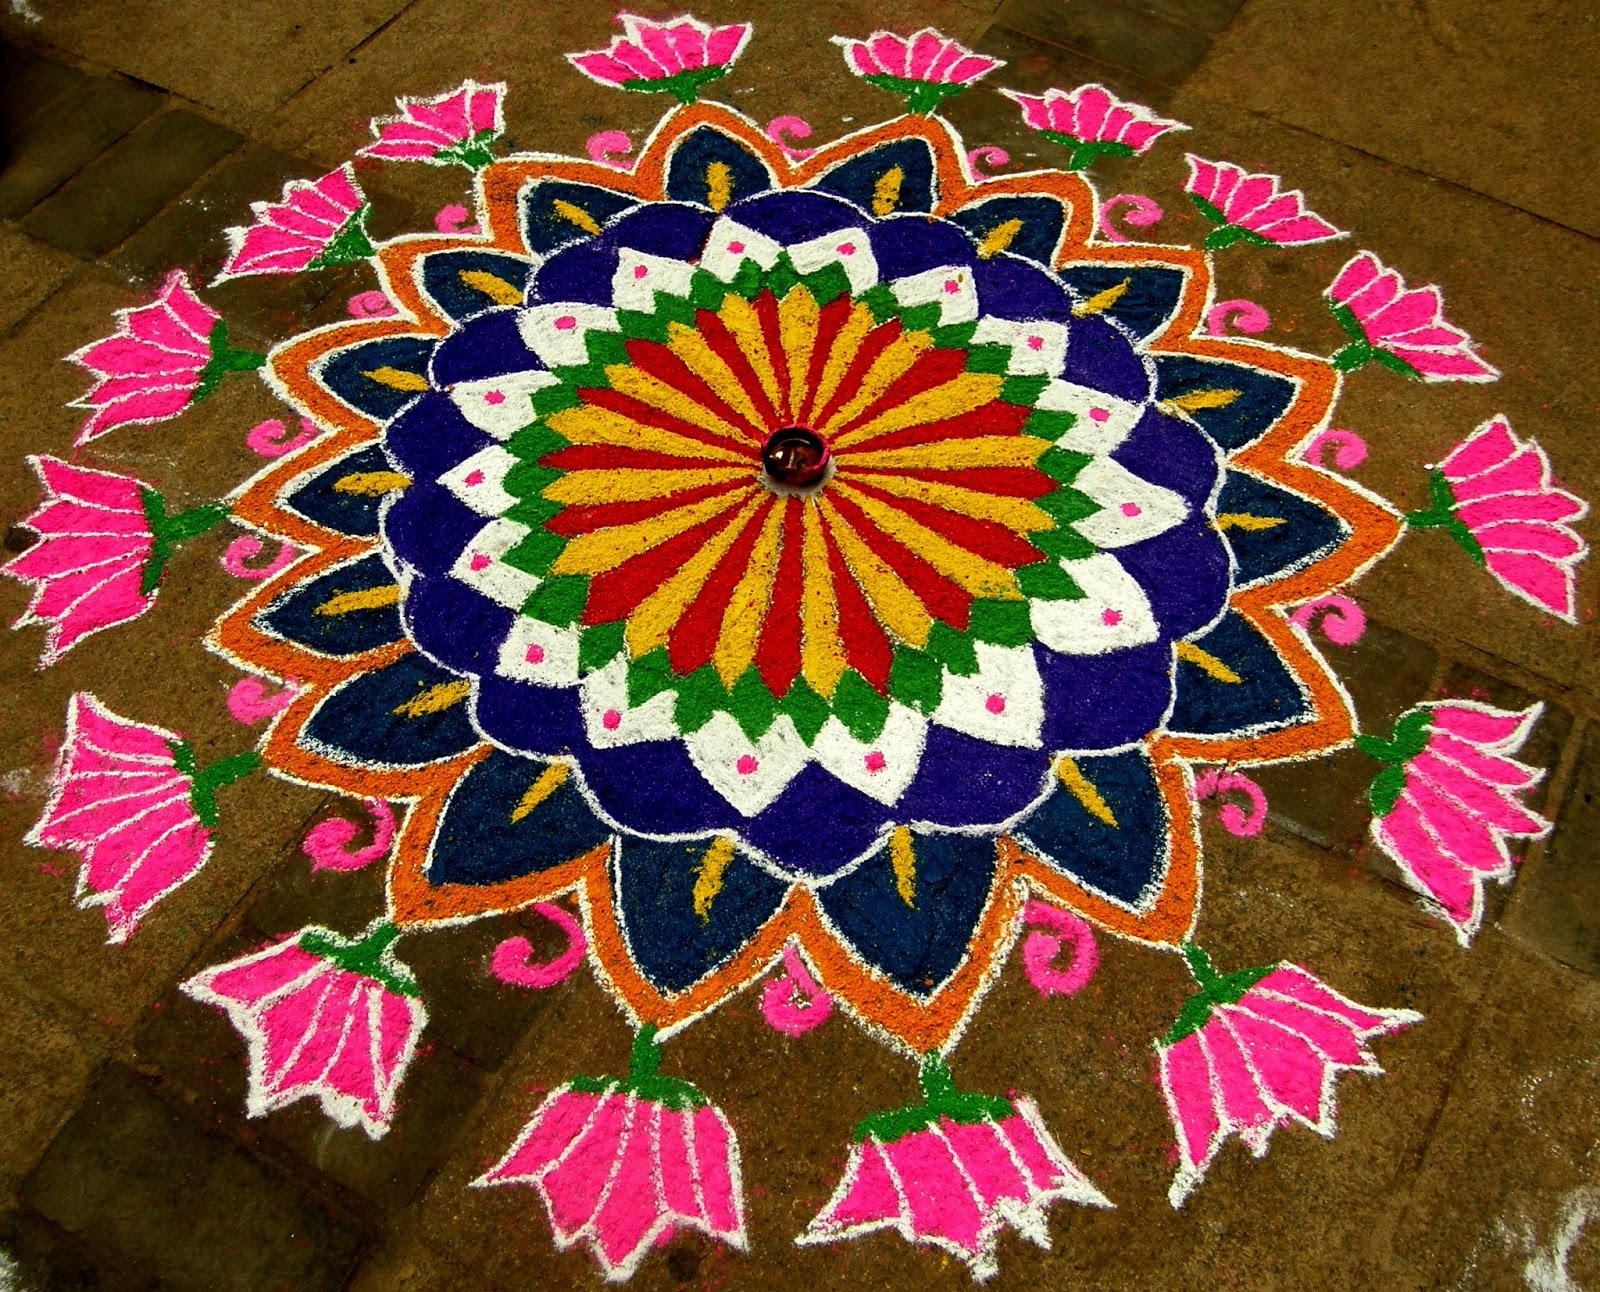 rangoli designs wallpaper stars - photo #46